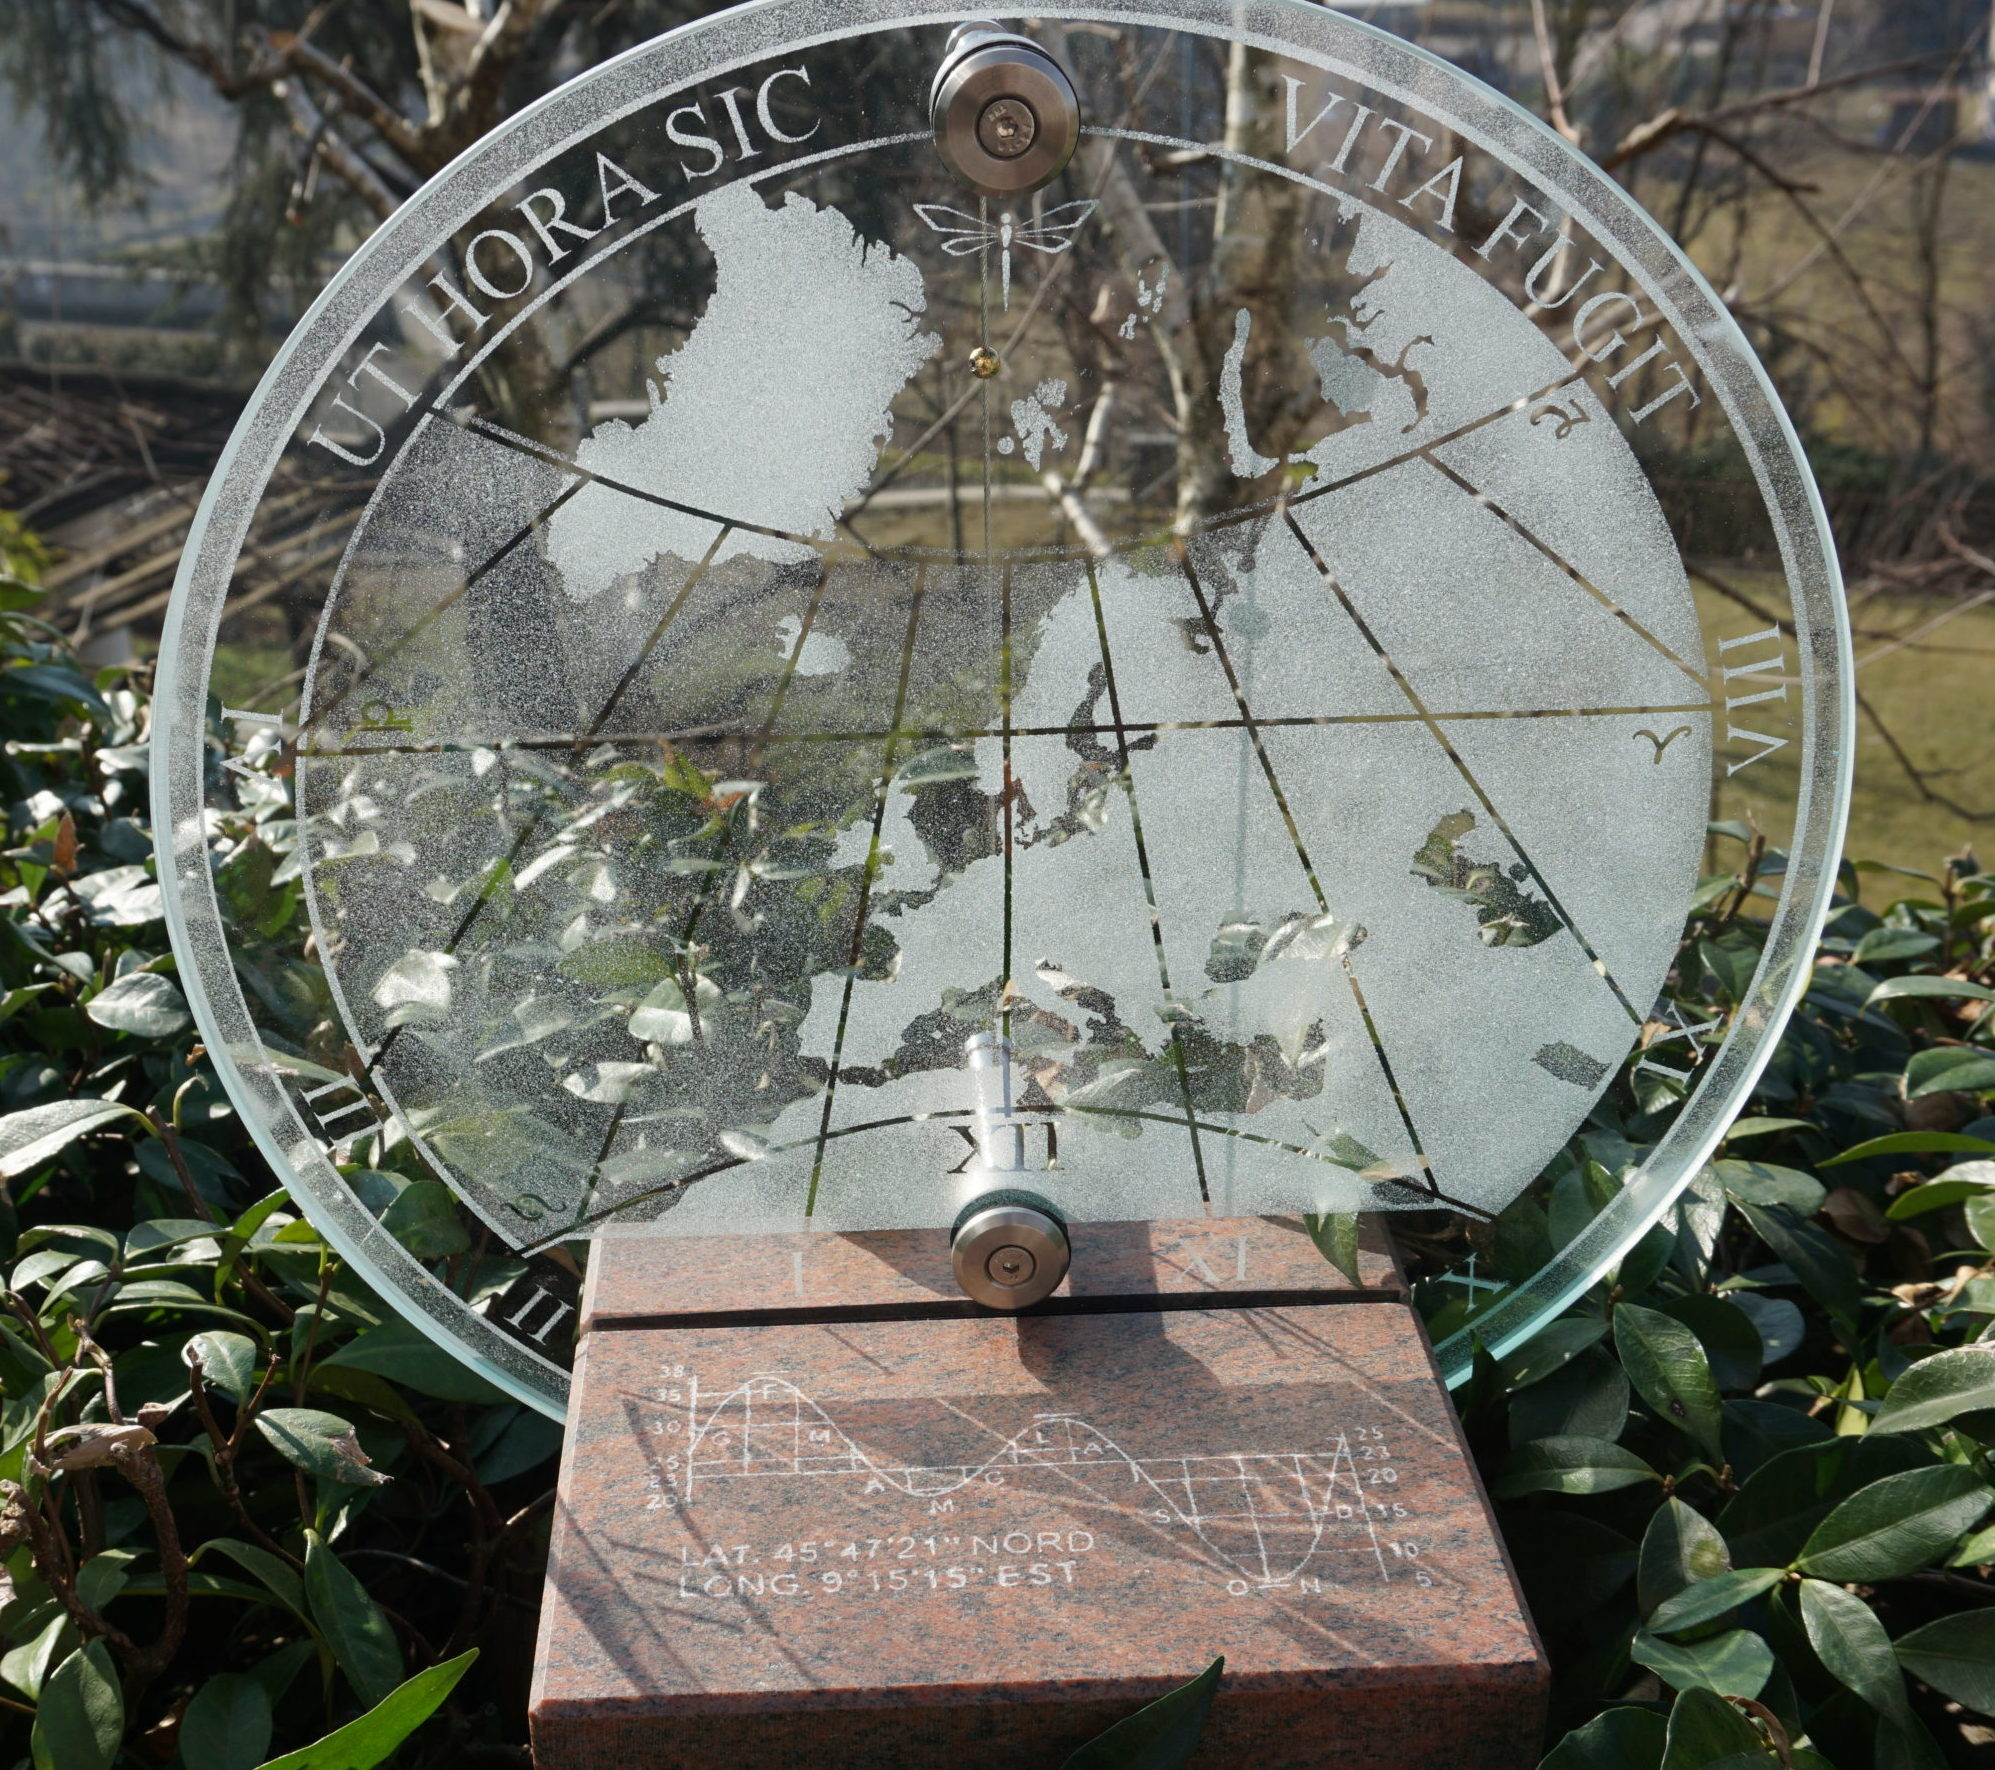 Meridiana trasparente da giardino. Transparent sundial for the garden